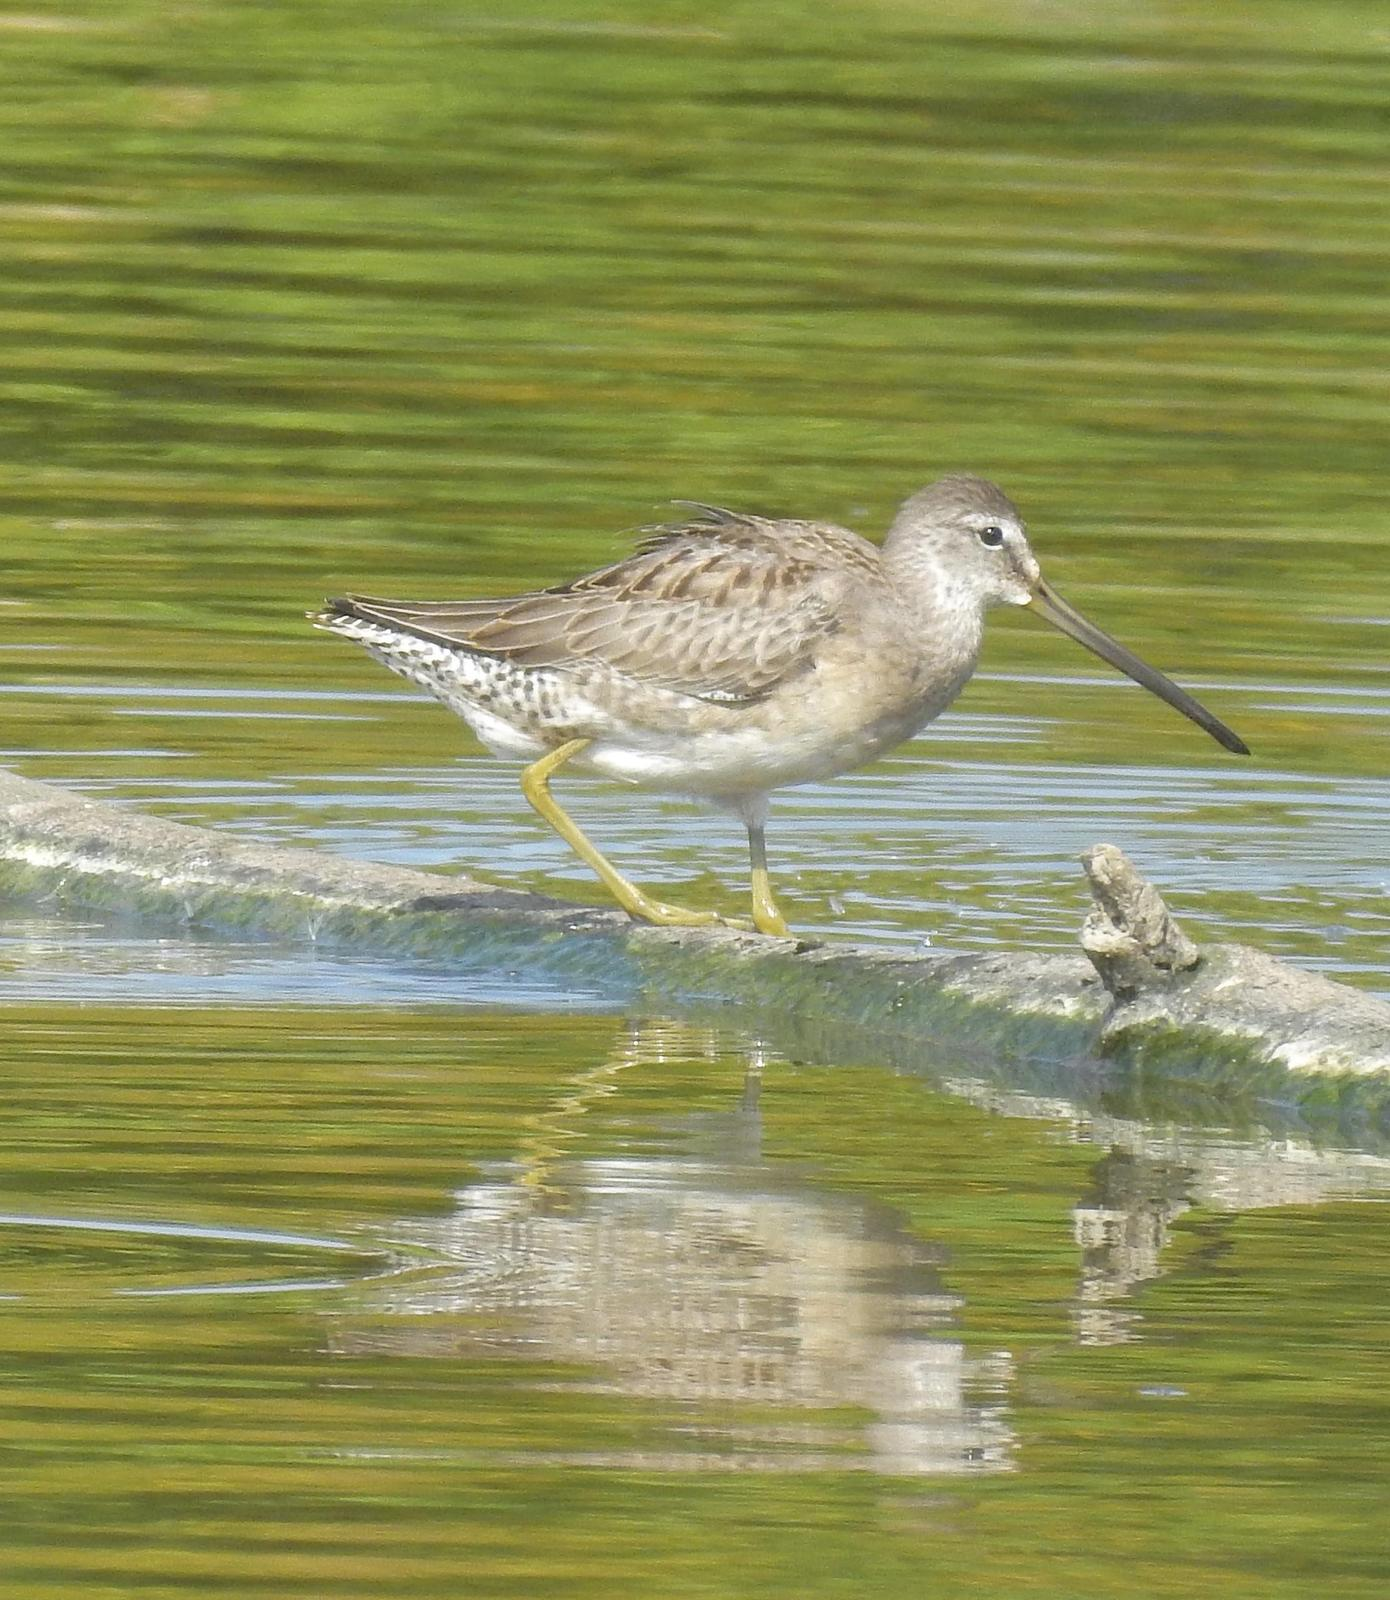 Long-billed Dowitcher Photo by John Licharson